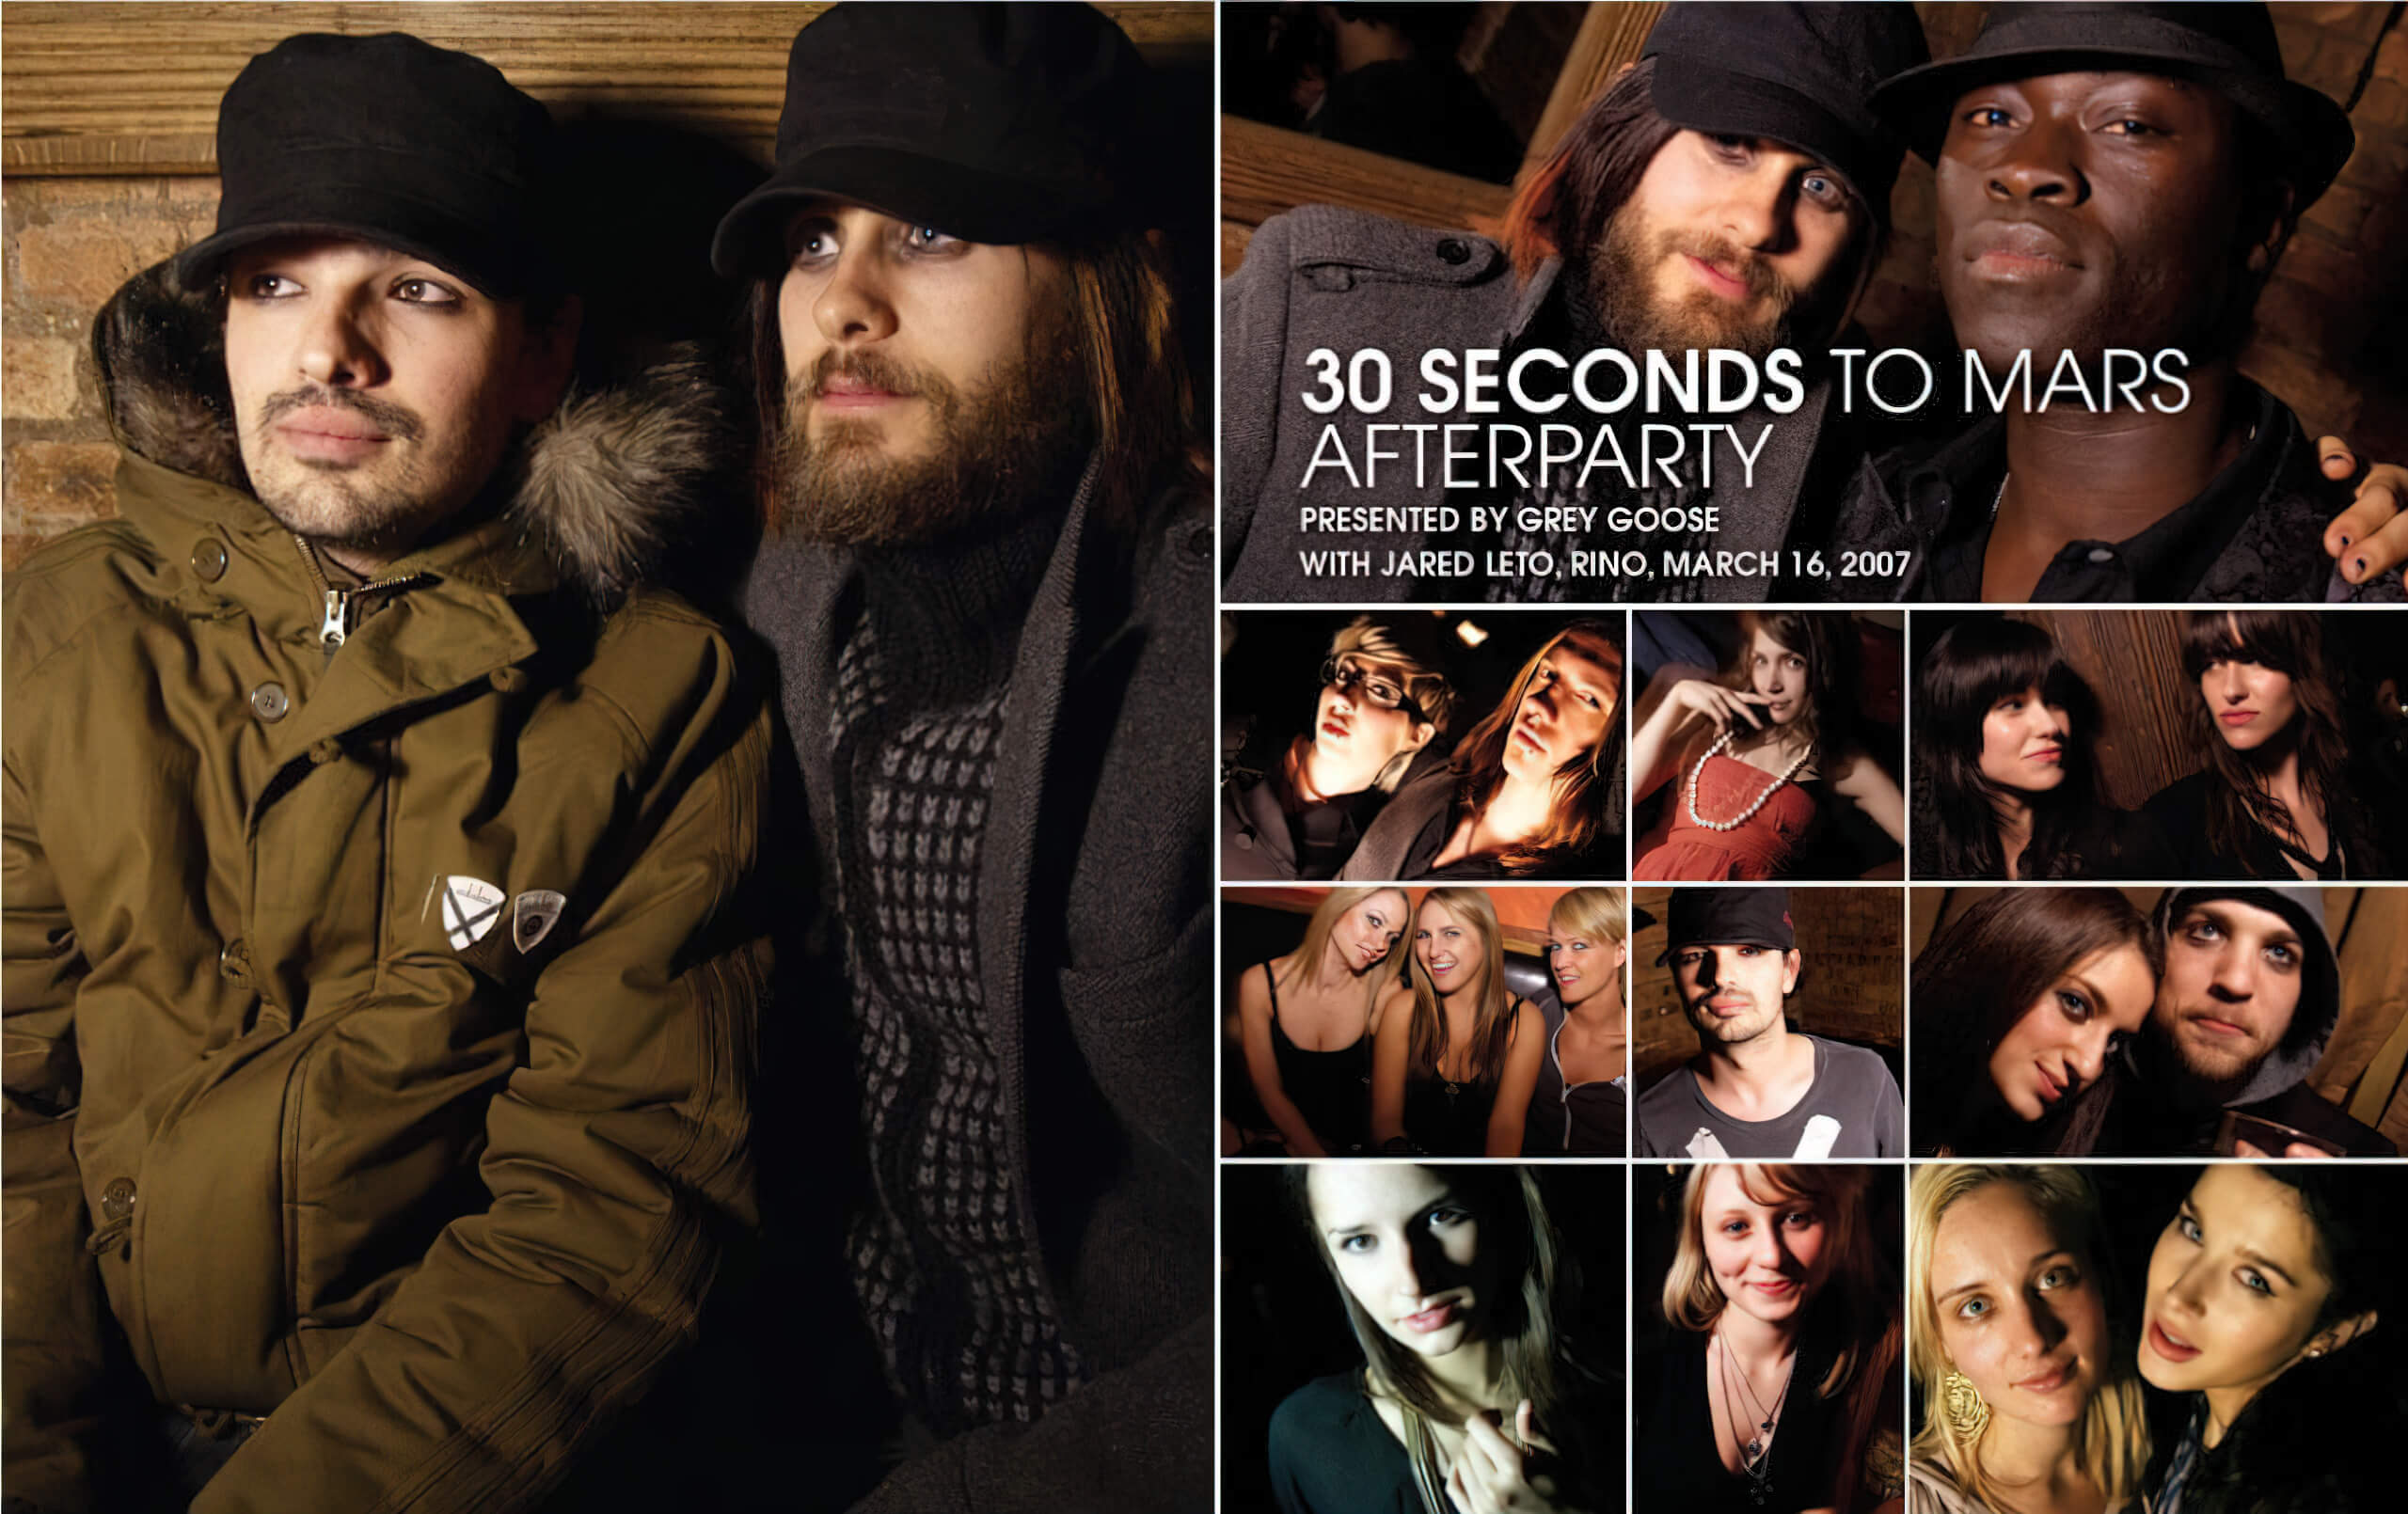 30 Seconds to Mars Afterparty hosted by Jared Leto